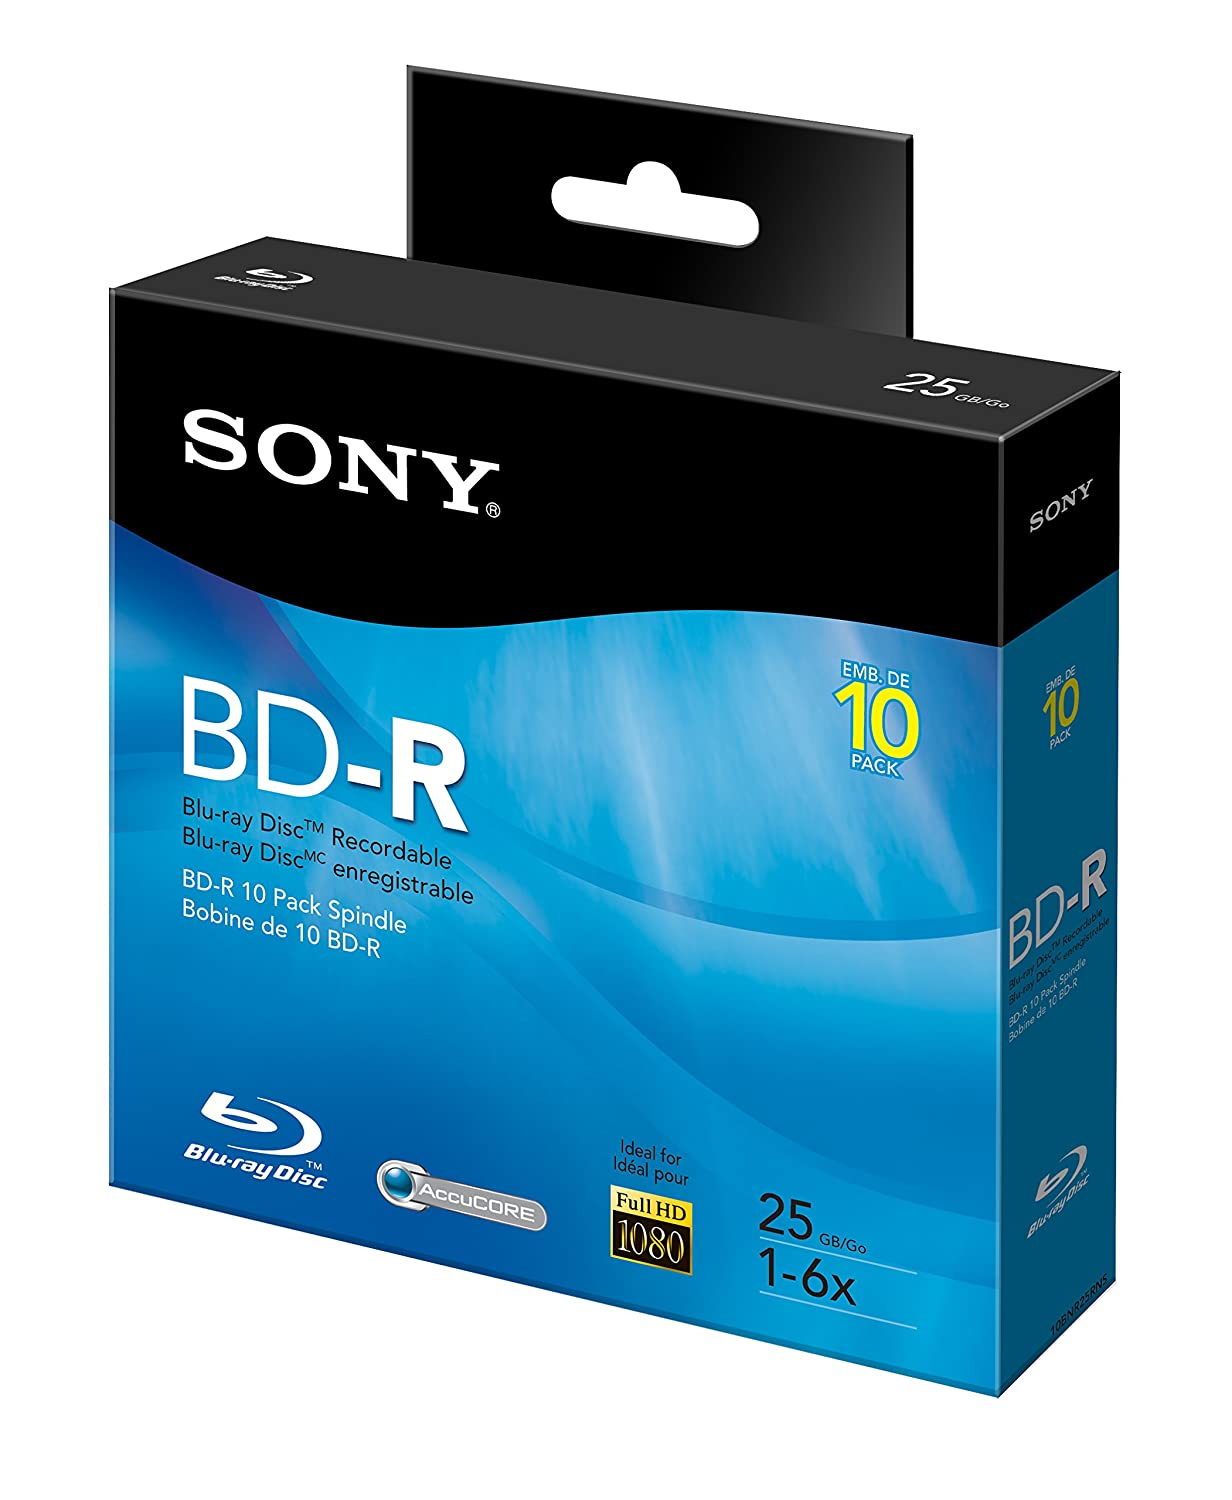 Sony 10BNR25RNS 6x 25GB Recordable Blu-Ray Disc - 10 Pack Spindle Sony Electronics Inc. - Media